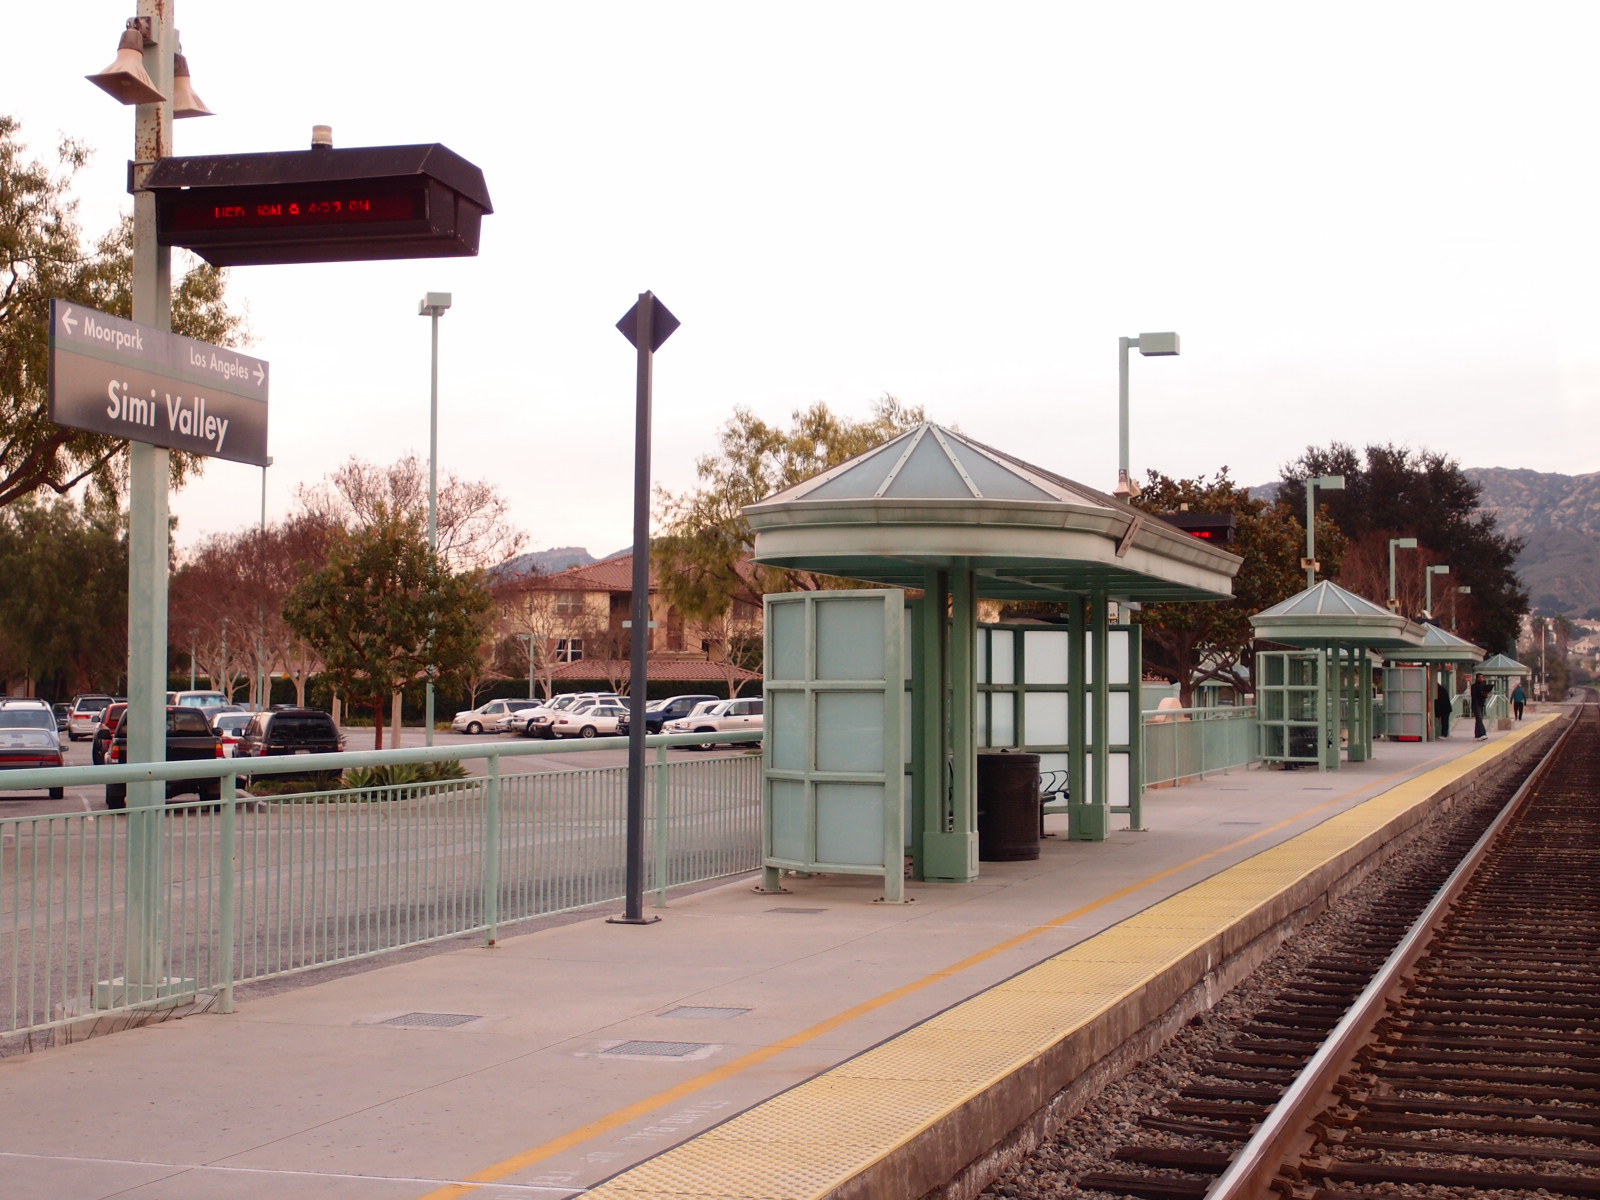 Simi Valley Station, Southern California